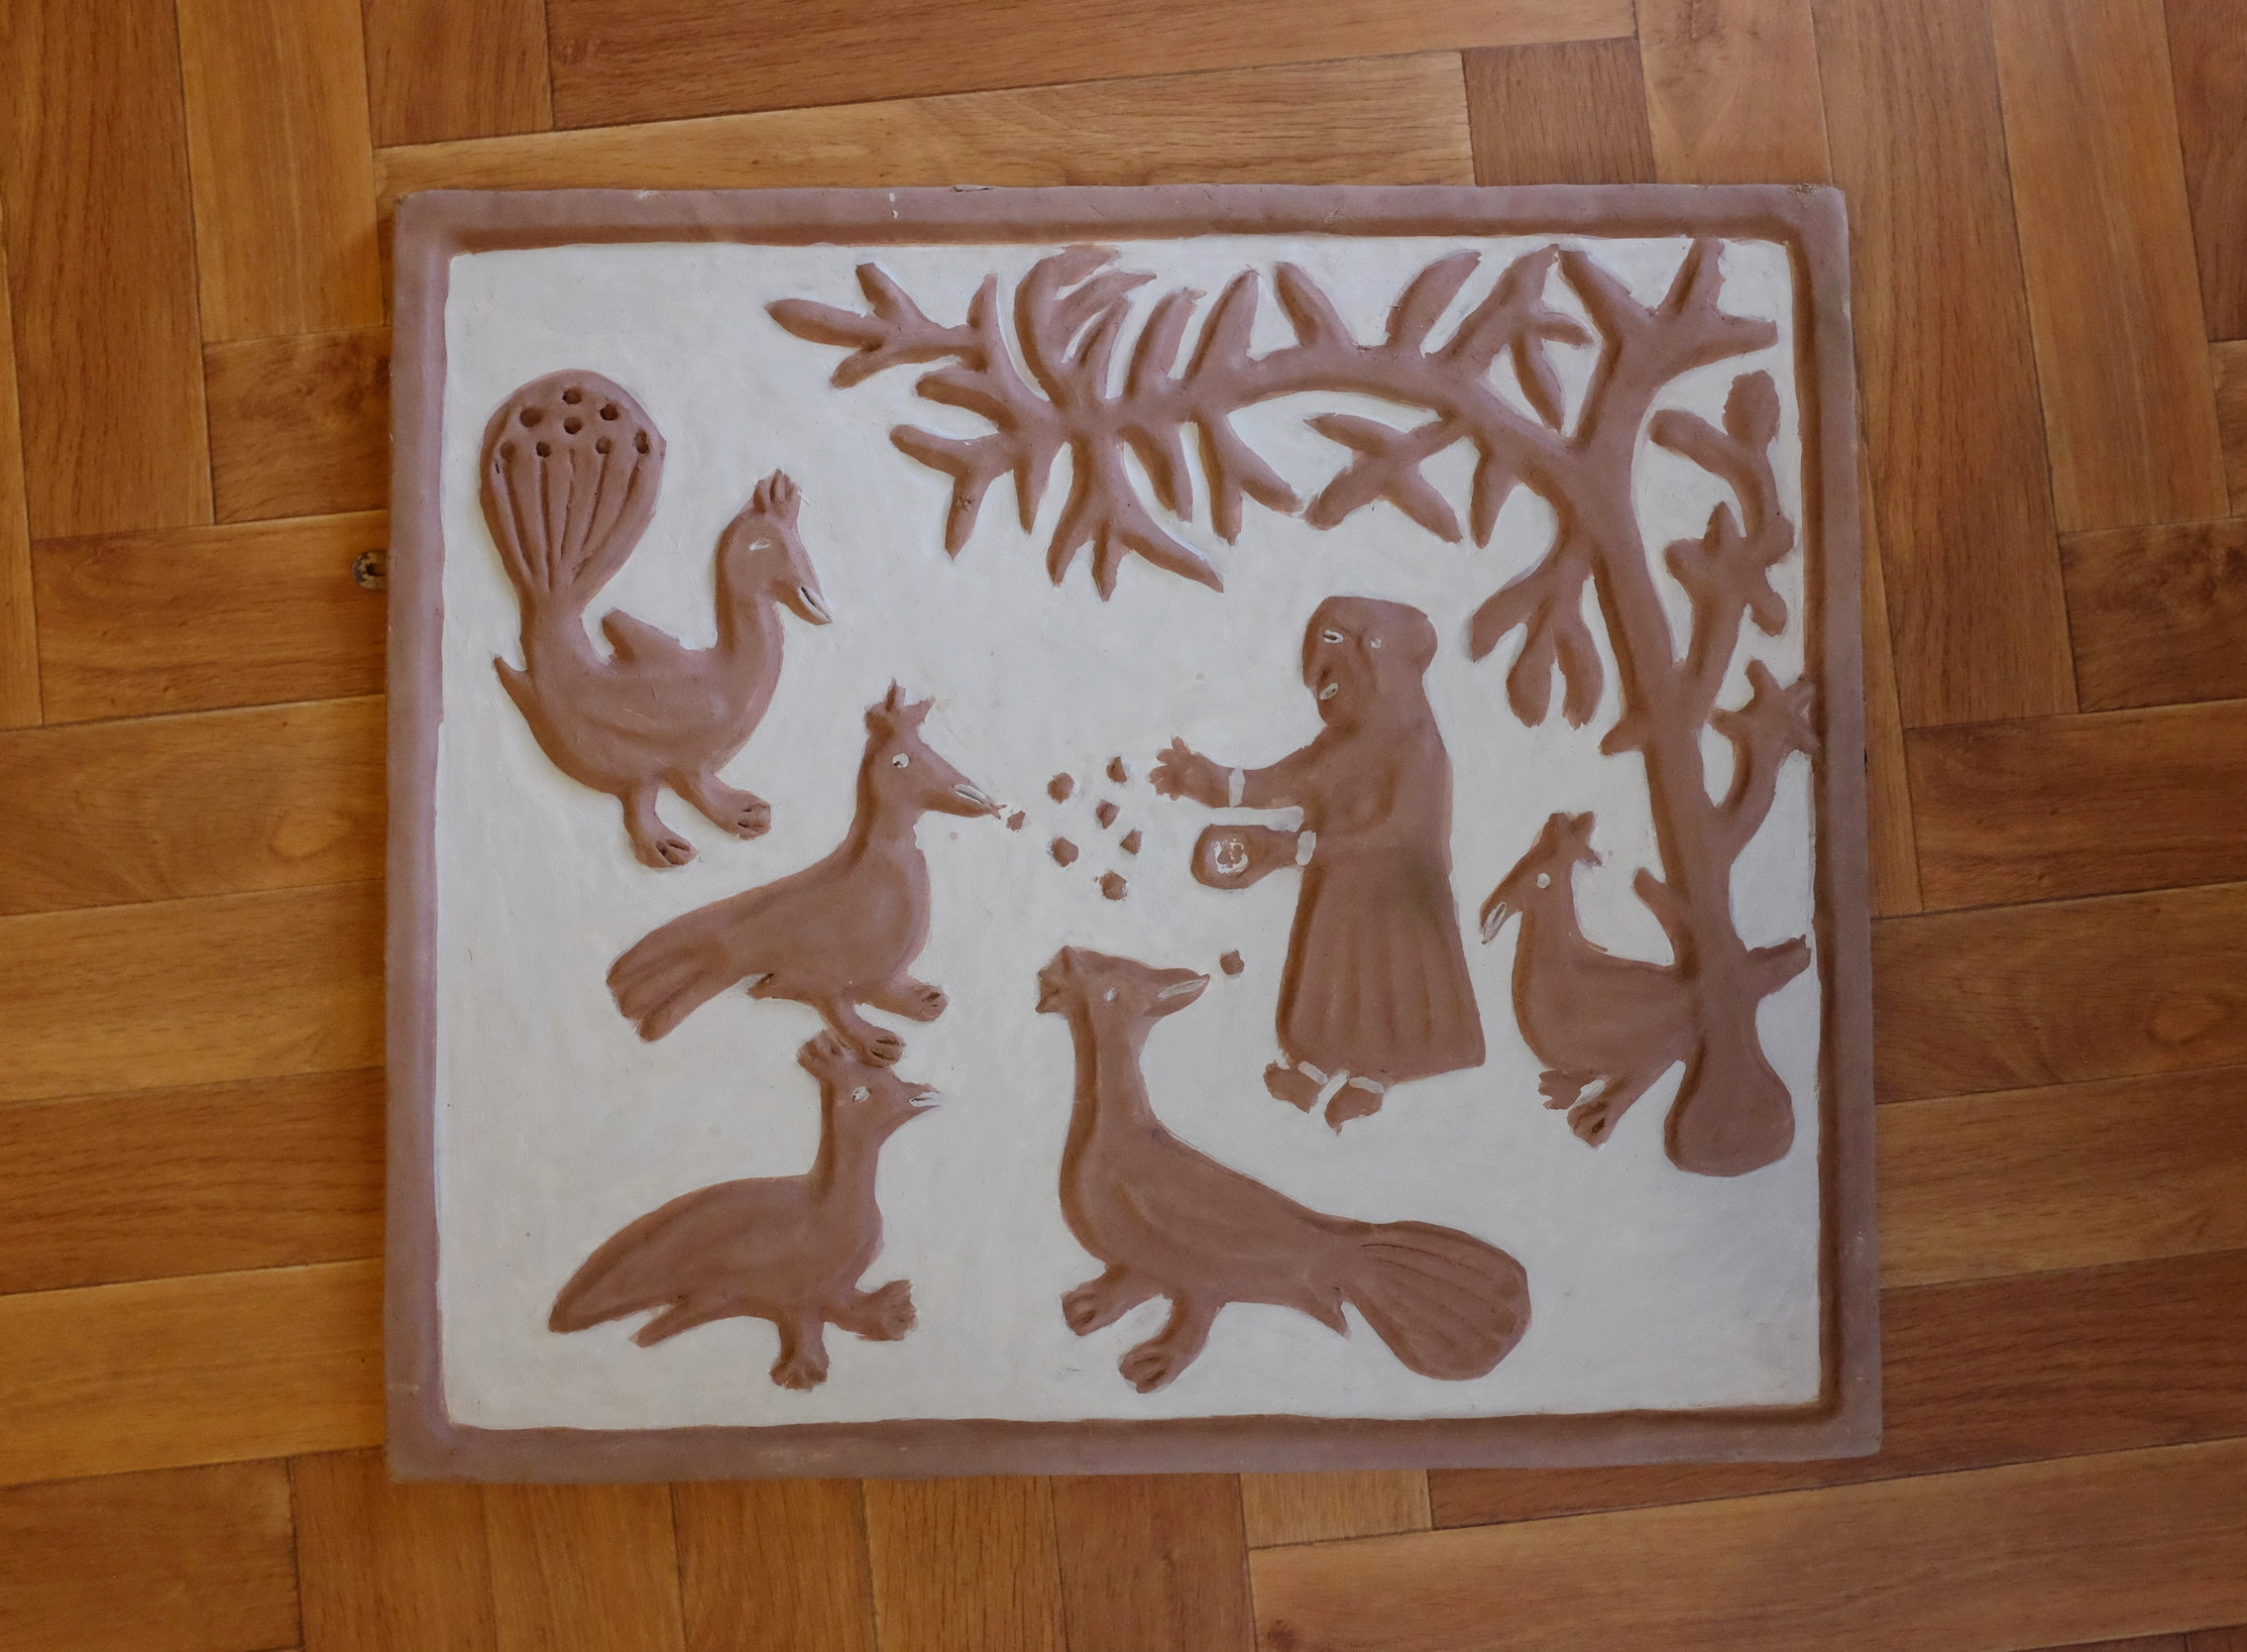 Photograph of a clay relief by Mrs Ranjit Dhanjal taken on an archive home visit.